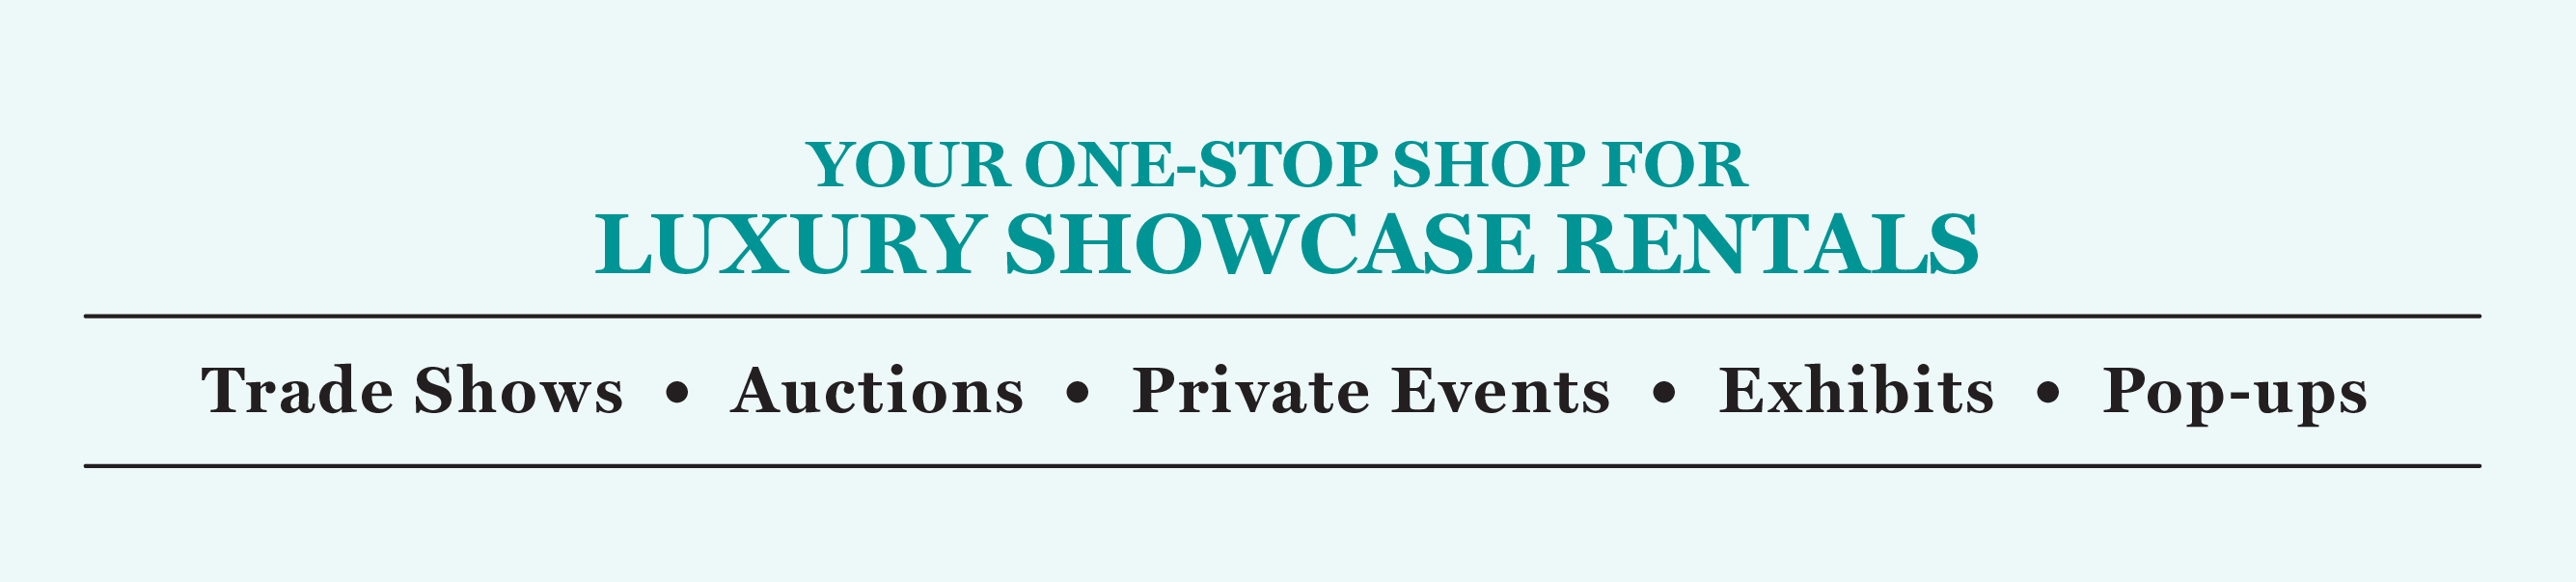 showcase, showcases, display case, display cases, trade show, trade shows, trade show rentals, tradeshow, exhibit, exhibit rentals, auction, auction rentals, event, event rentals, events rentals, las vegas, new york